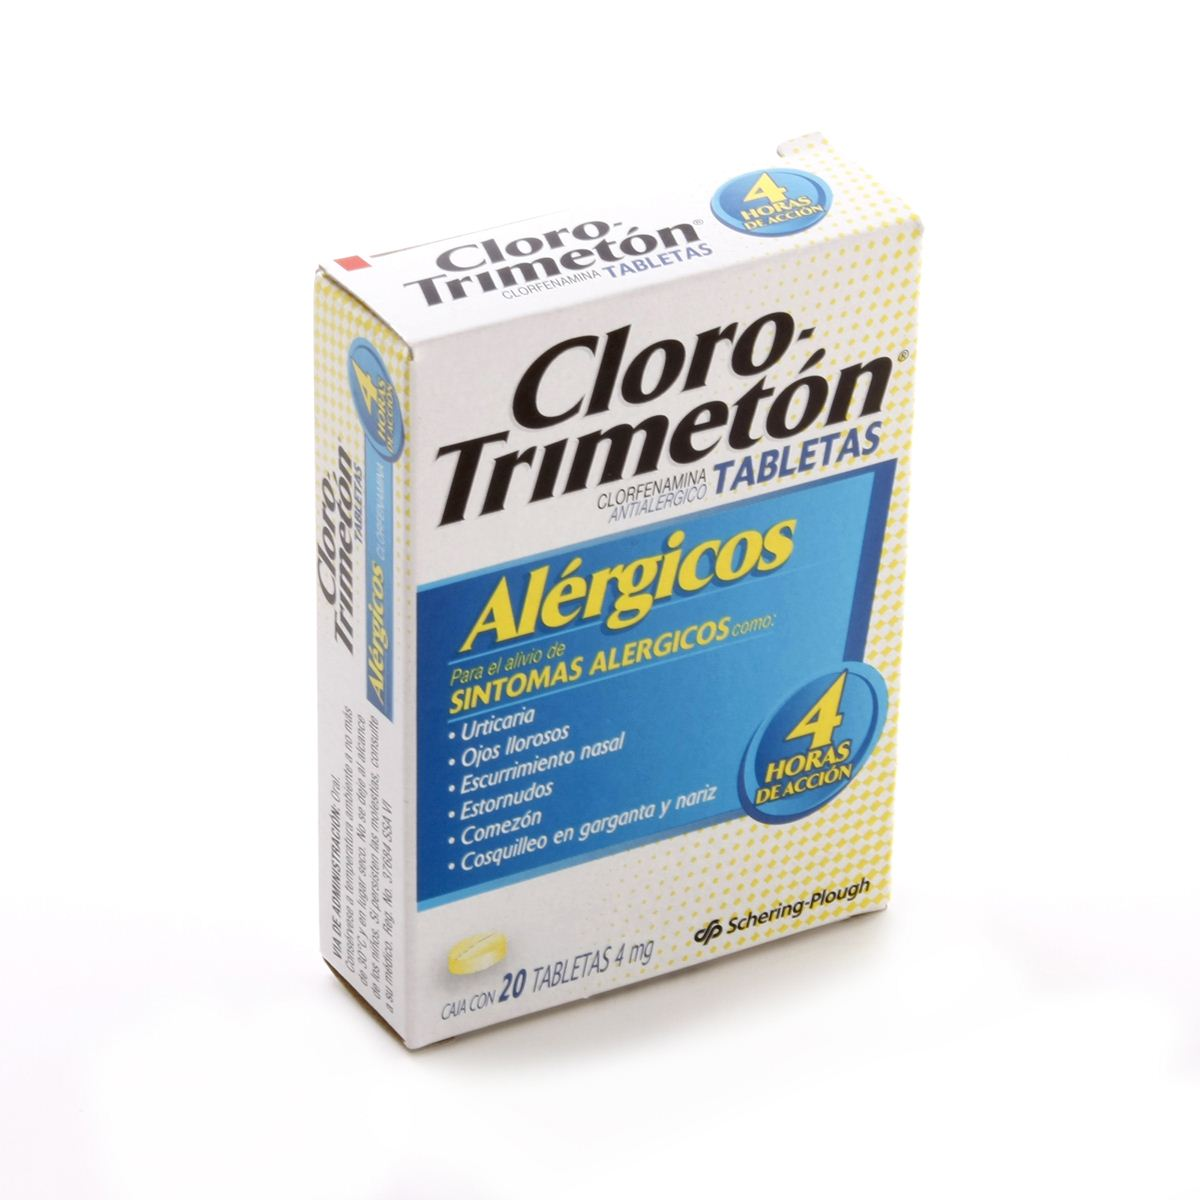 Cloro-Trimeton 4 mg 20 Tabletas